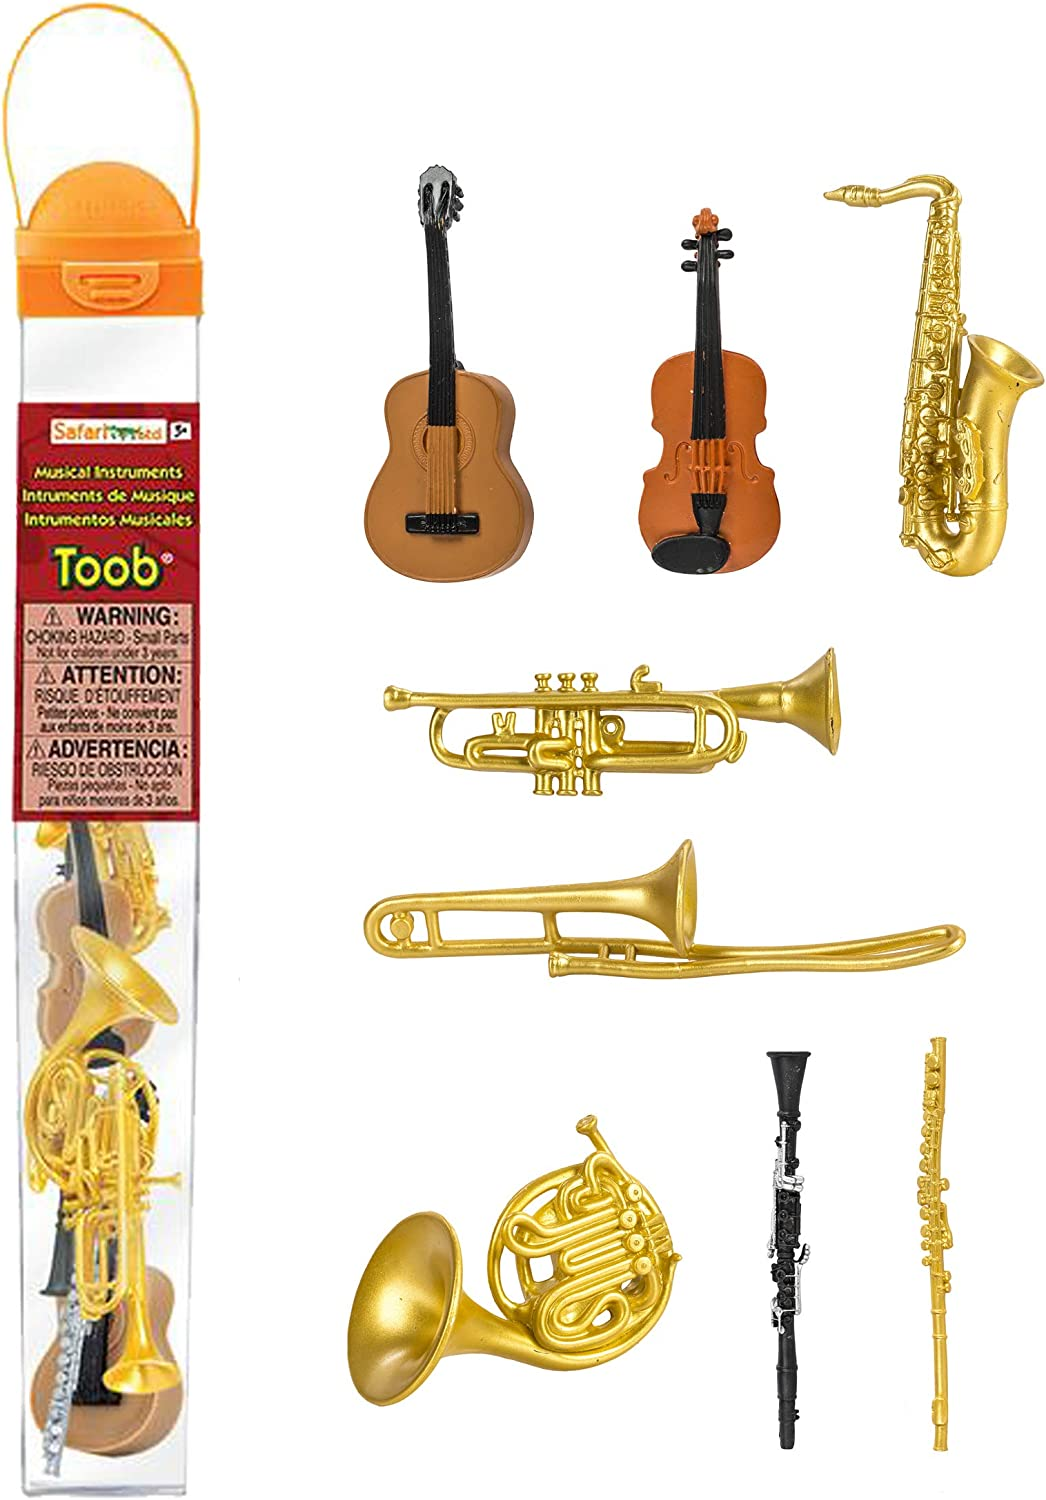 Safari Ltd Musical Instruments TOOB